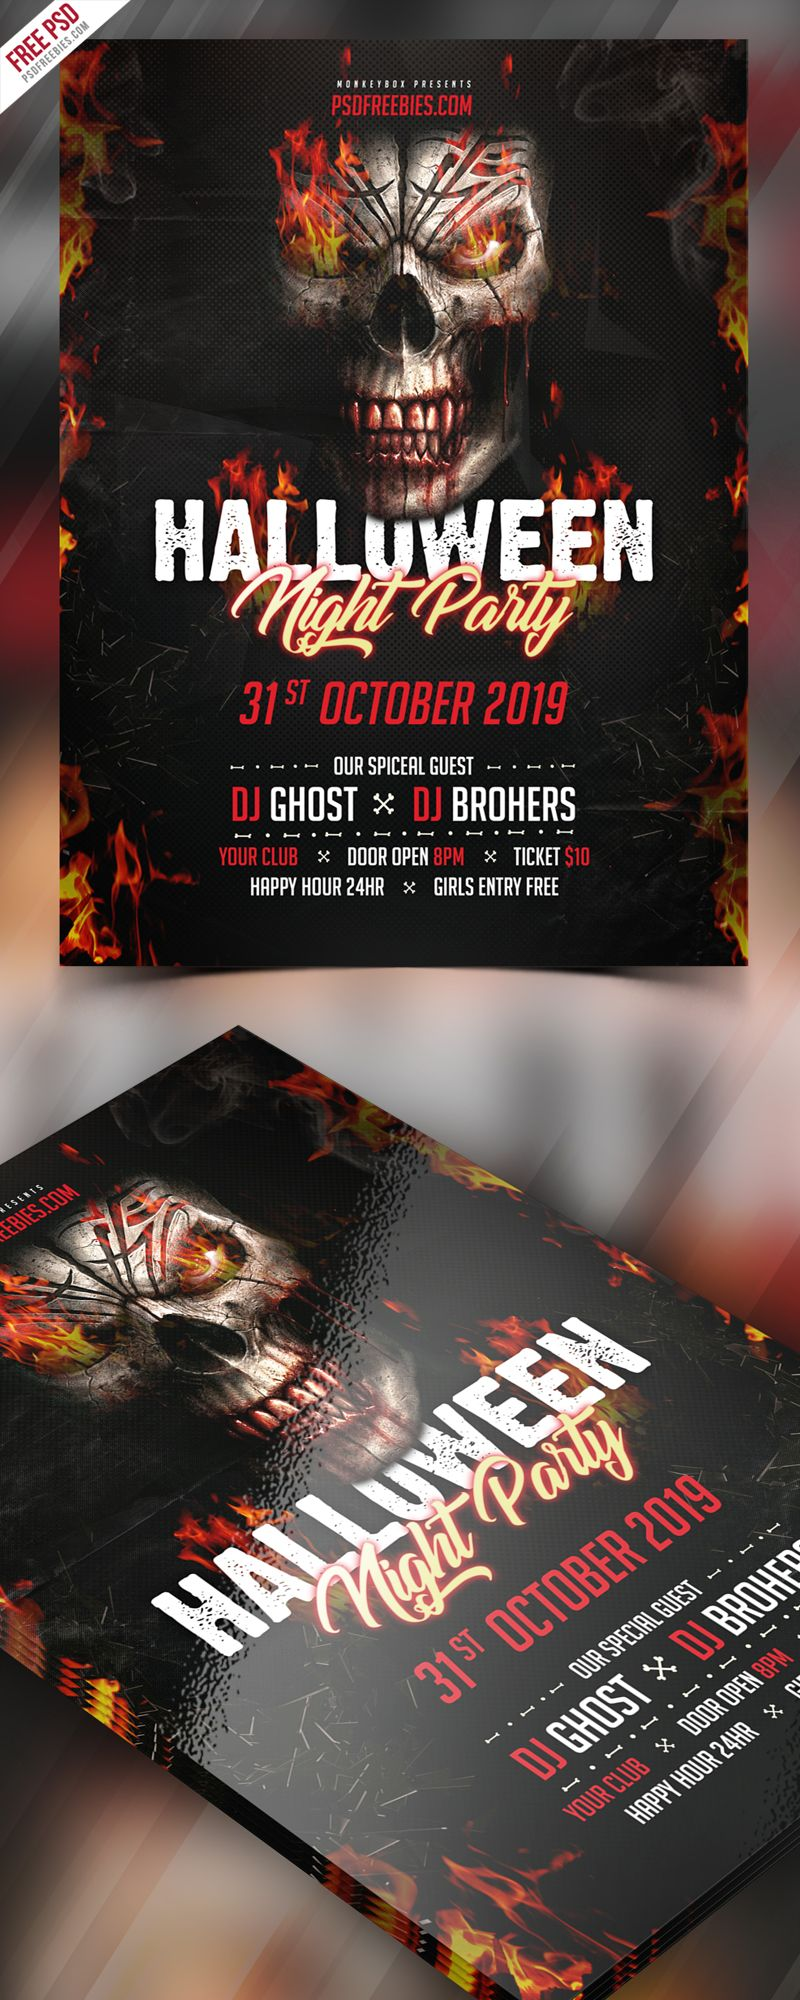 Halloween Party Invitation Flyer PSD Template | Halloween party ...